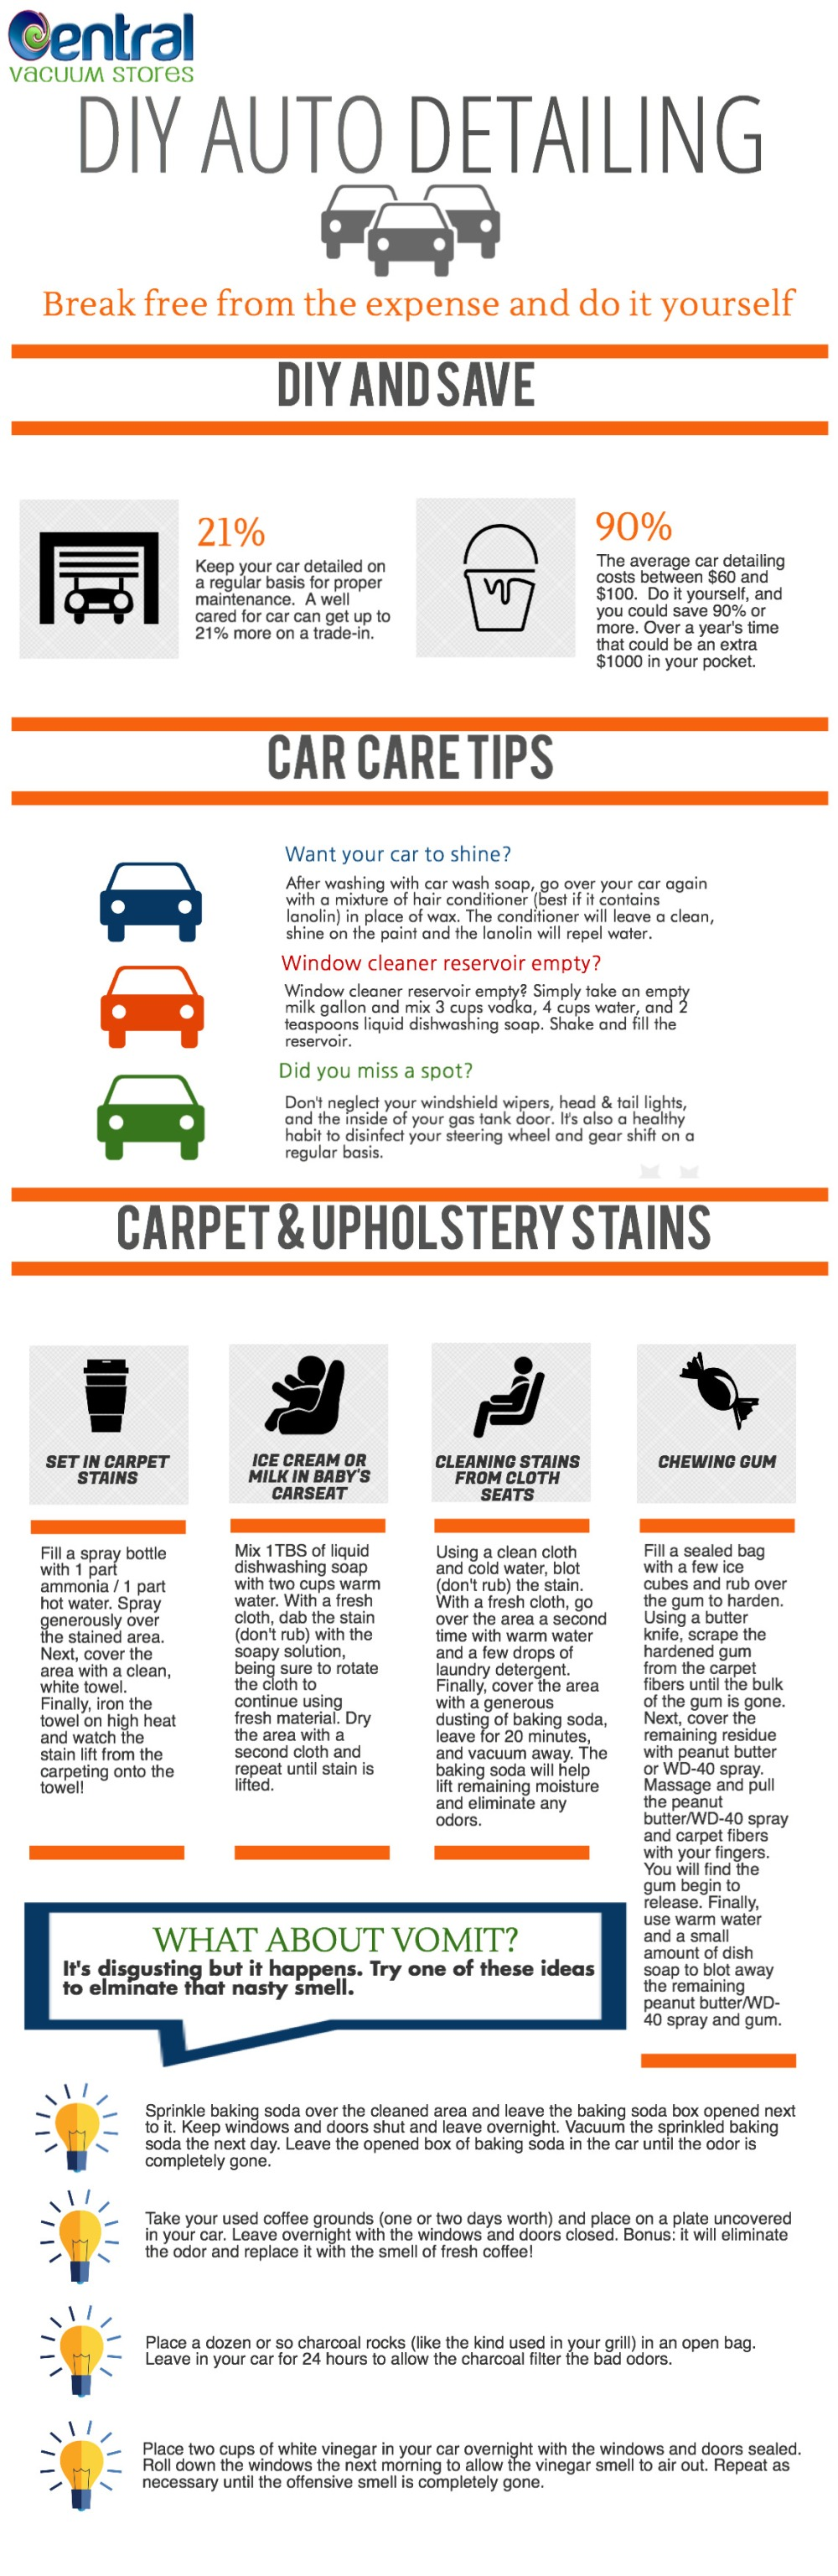 DIY CAR DETAILING INFOGRAPHIC